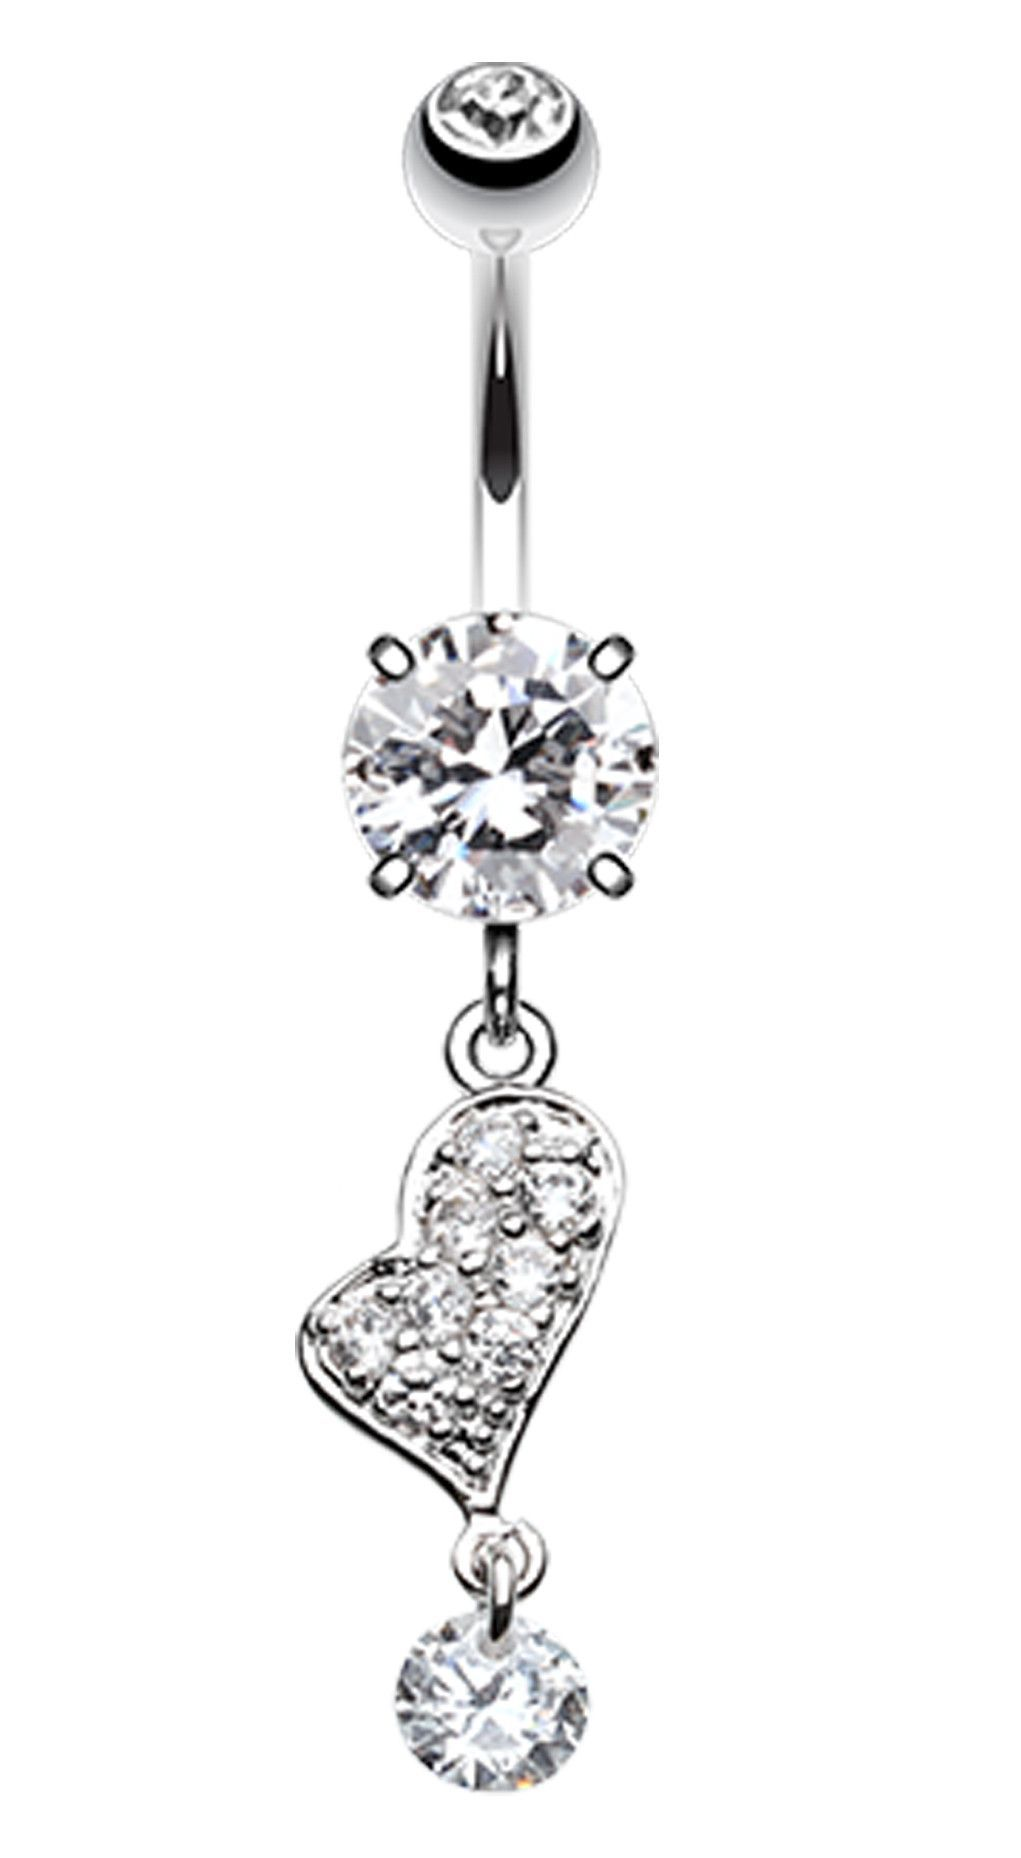 Belly button piercing without jewelry  GlassGemed Heart Belly Button Ring  Belly button and Products